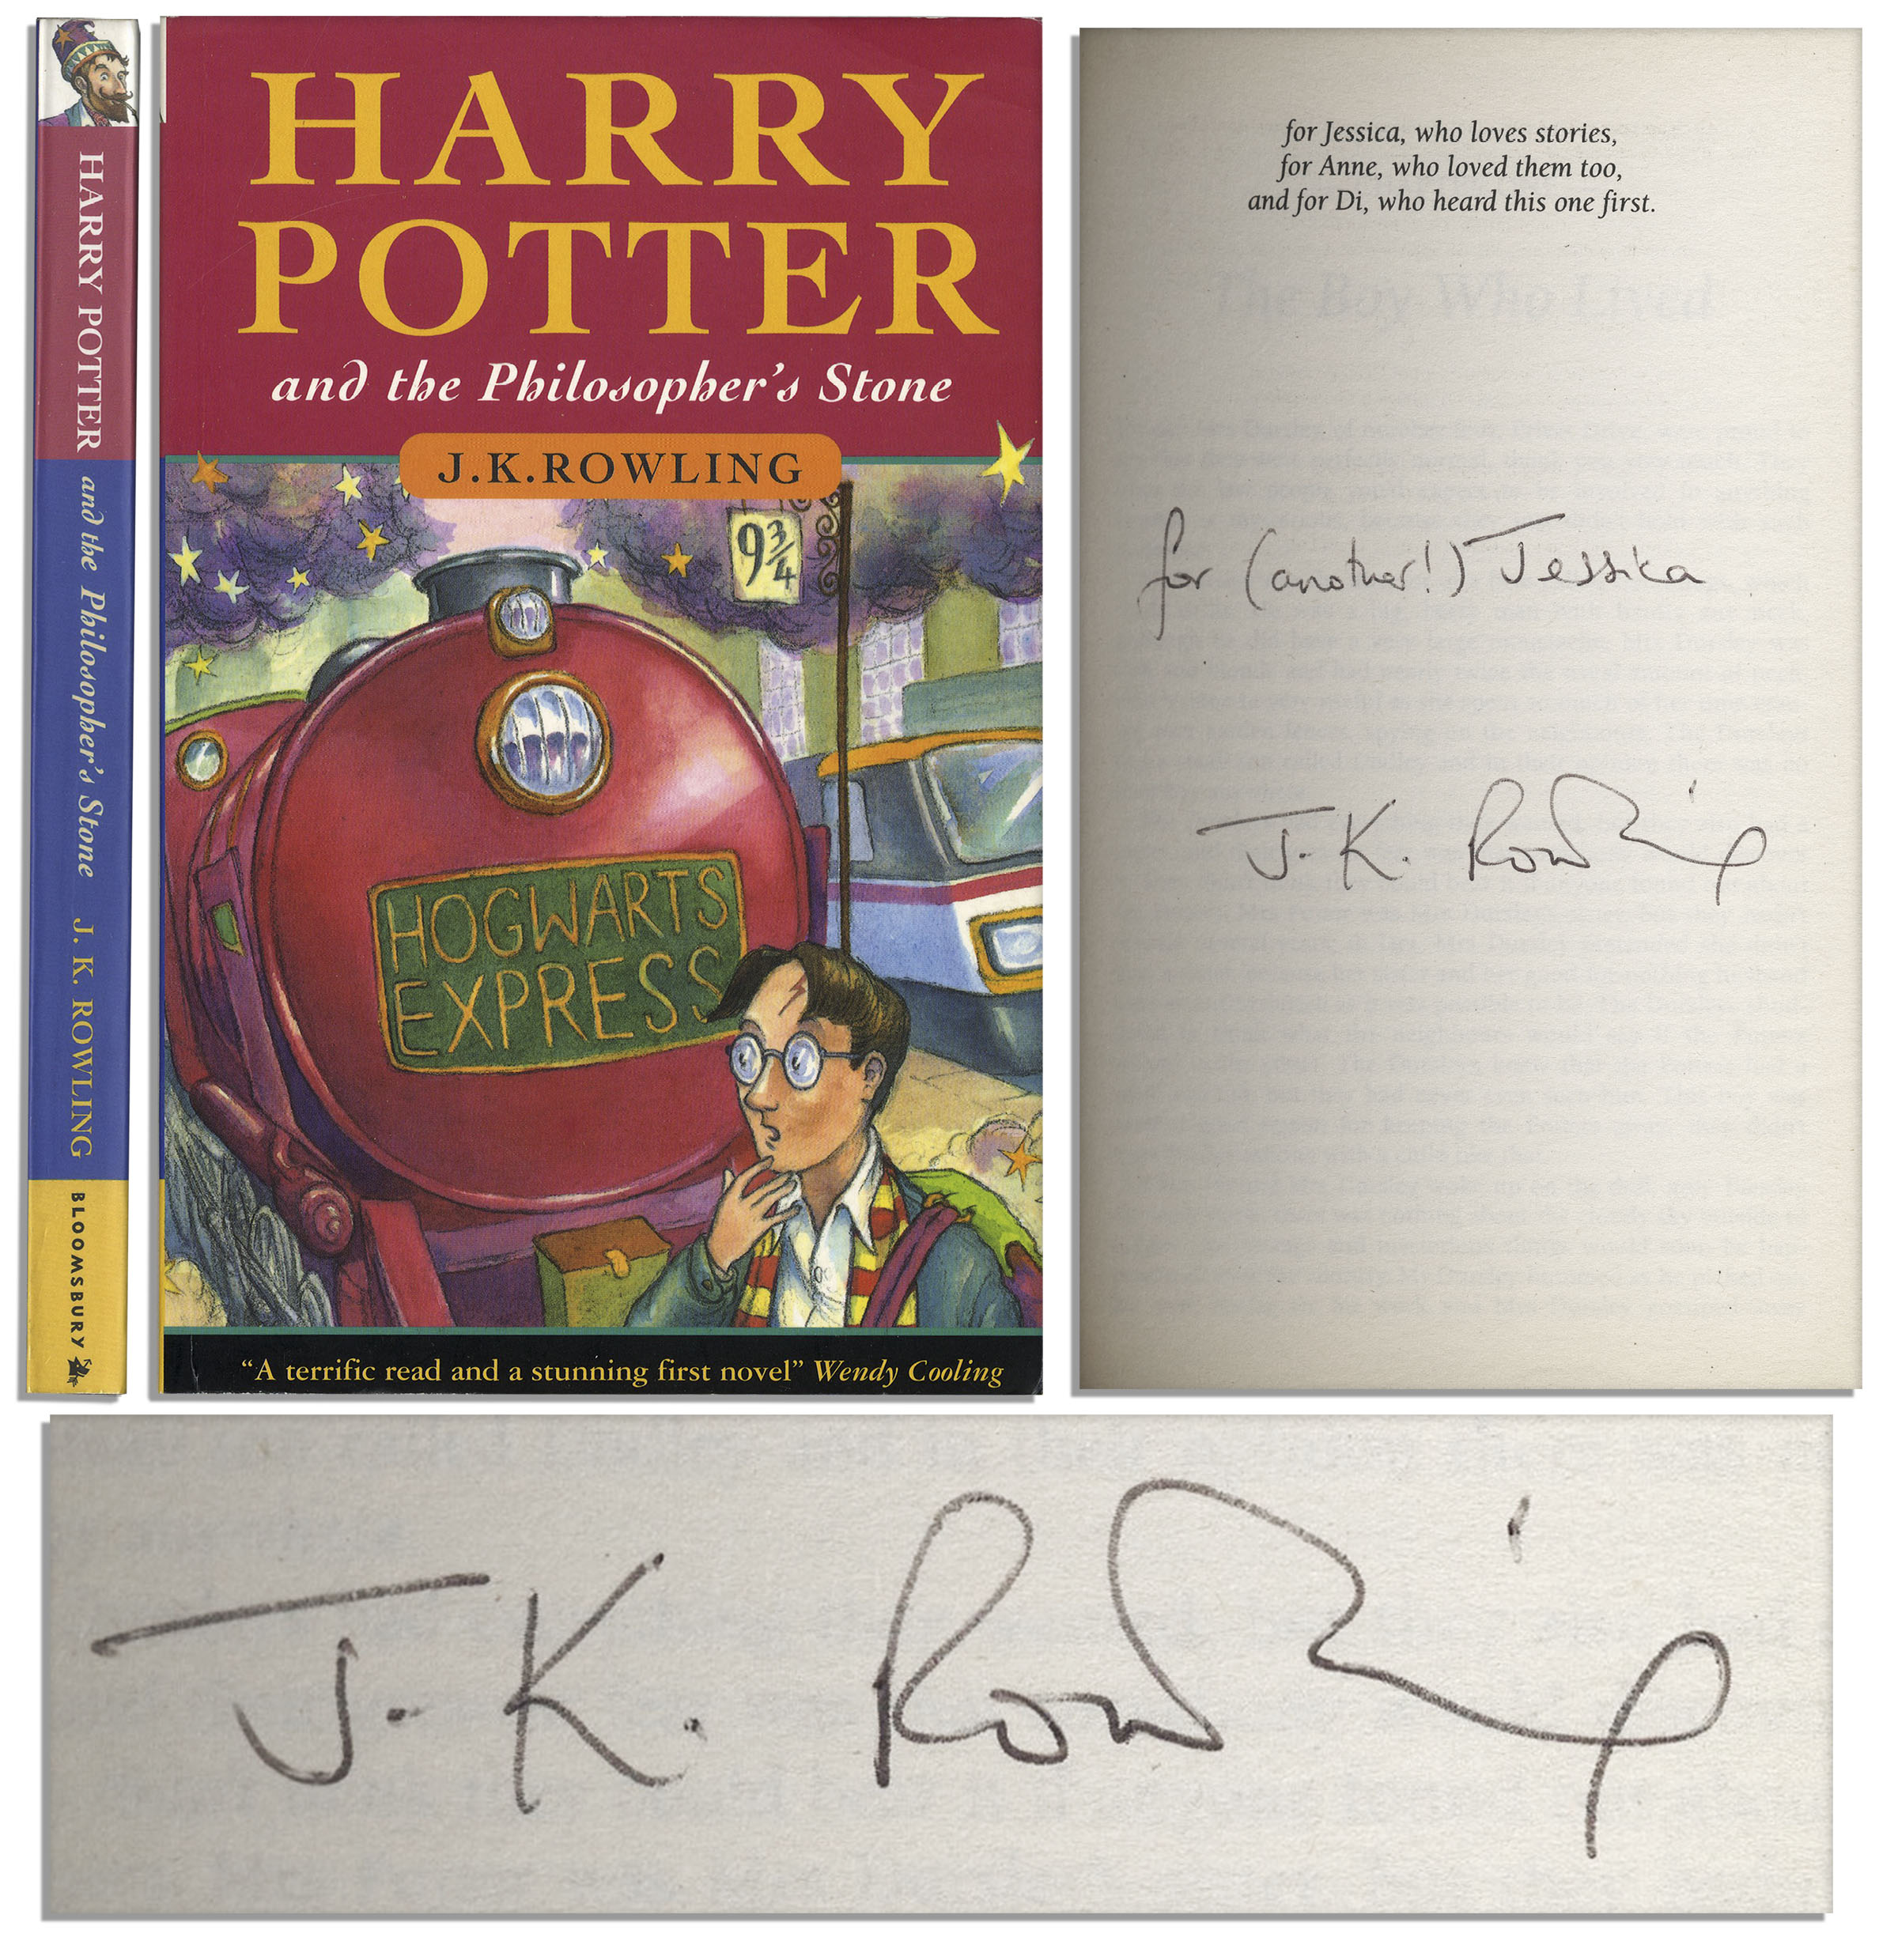 Harry Potter Book Worth ~ Lot detail scarce first printing of quot harry potter and